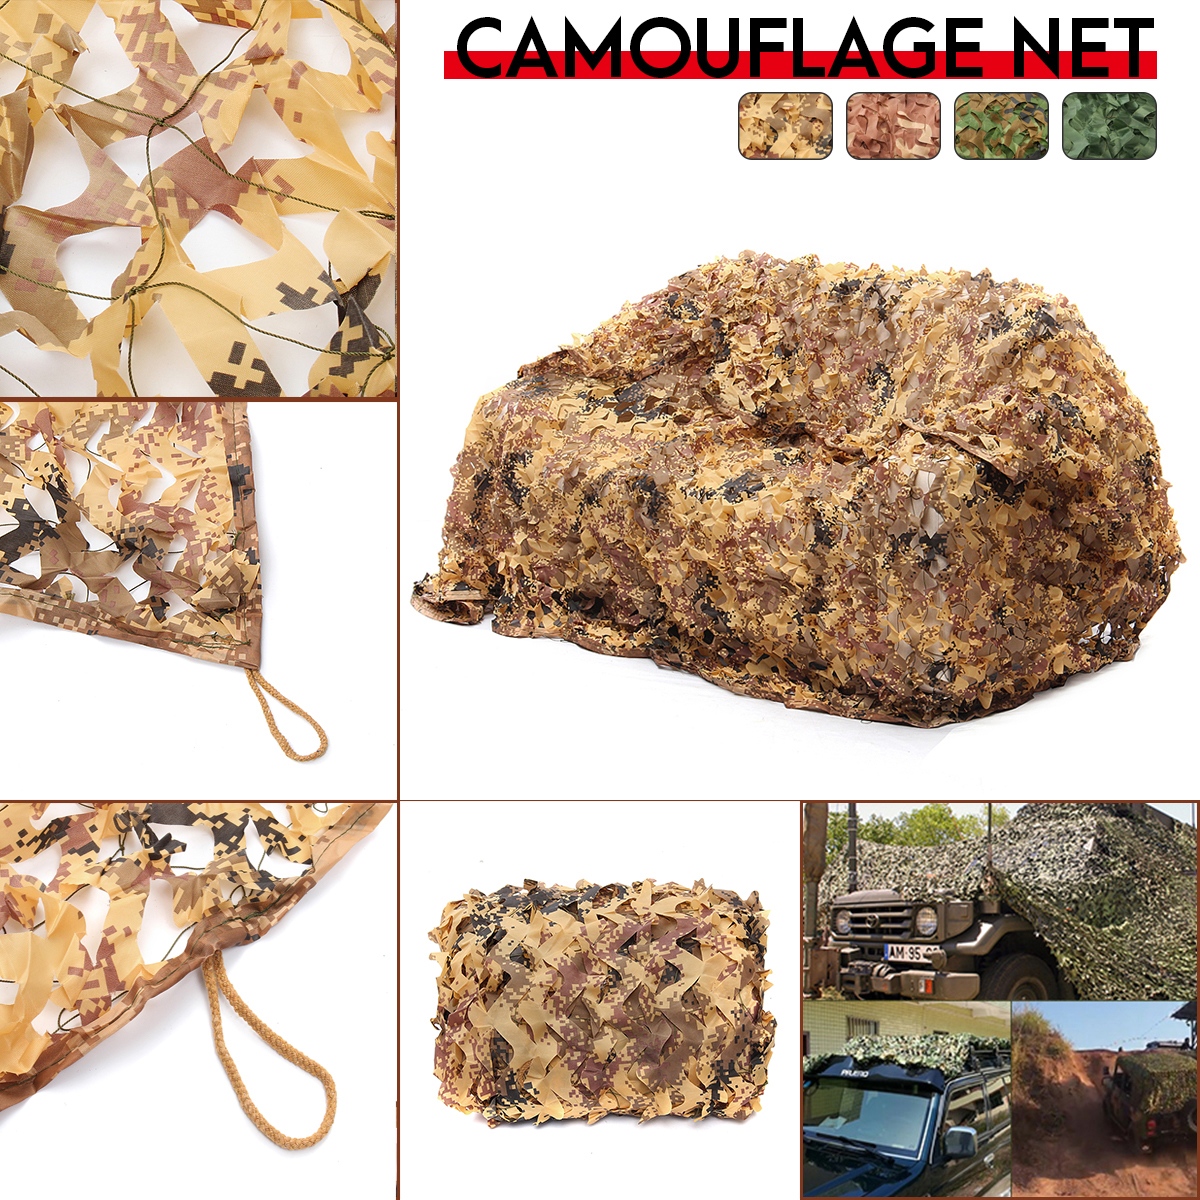 2mX3m Digital Desert Camo Netting Camouflage Net for Car Cover Camping Woodland Military Hunting